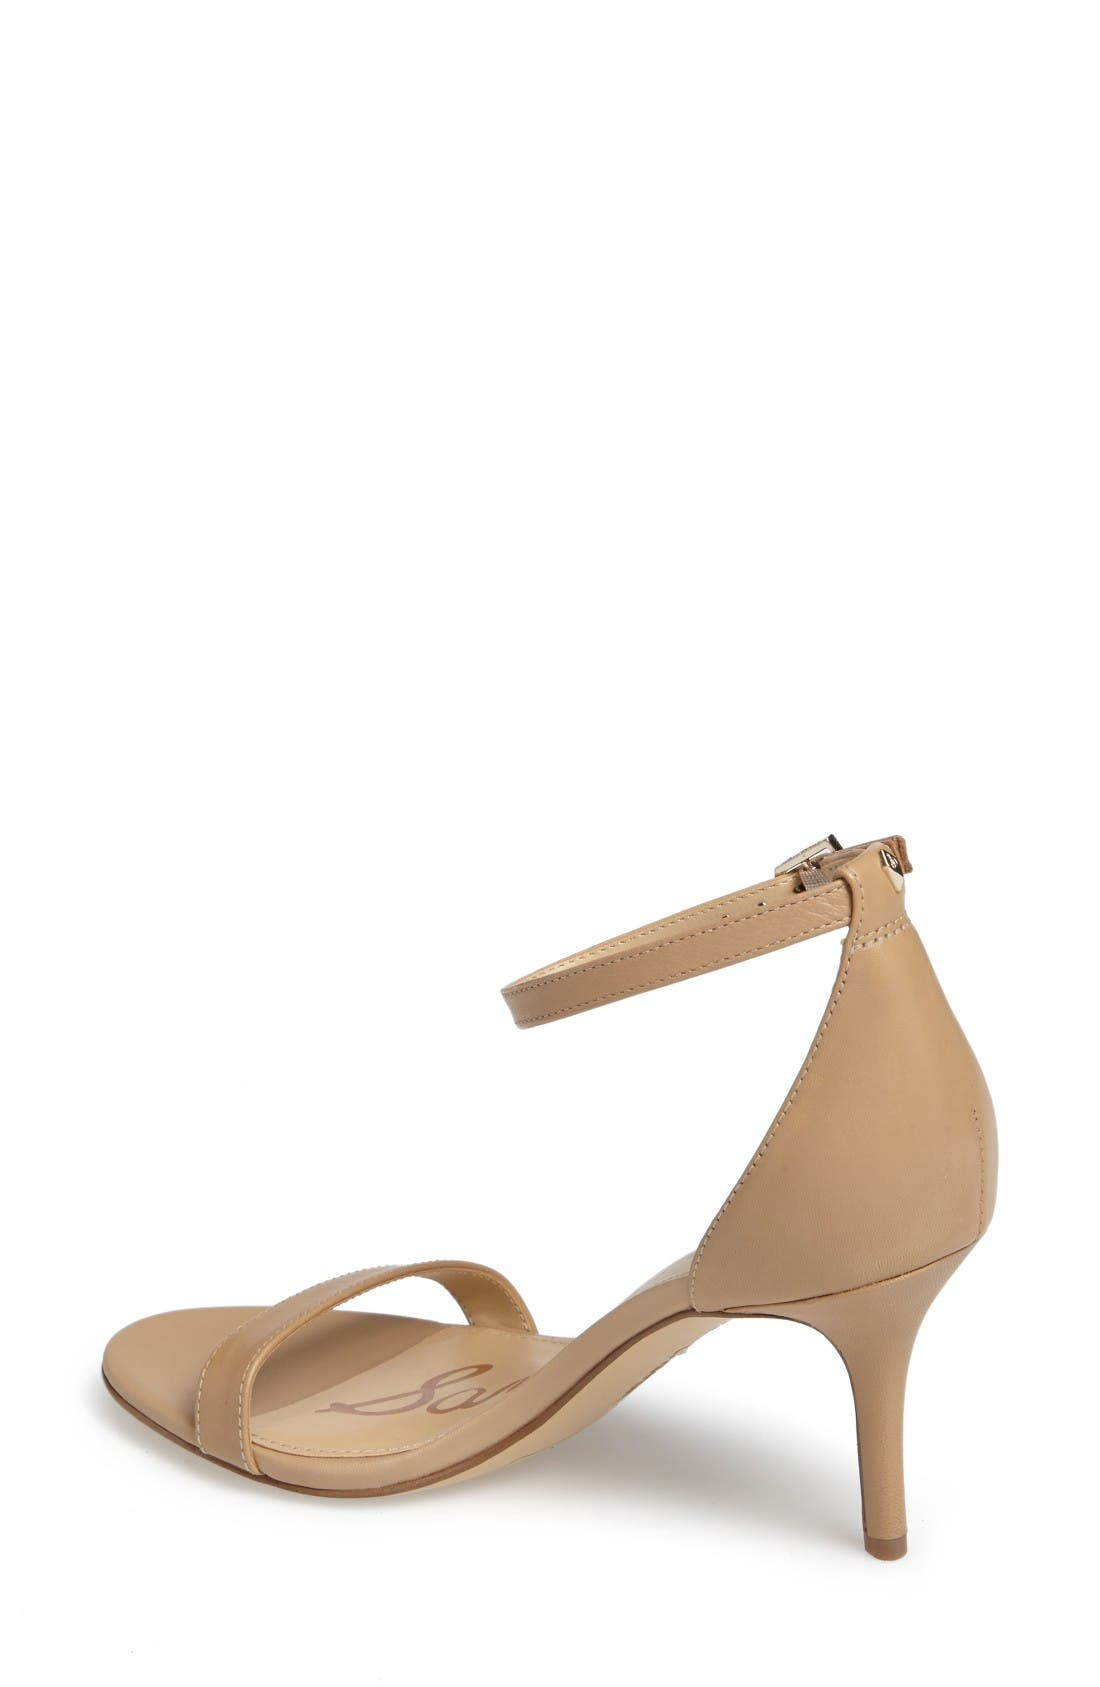 Patti Strappy Sandal,                             Alternate thumbnail 2, color,                             Classic Nude Leather